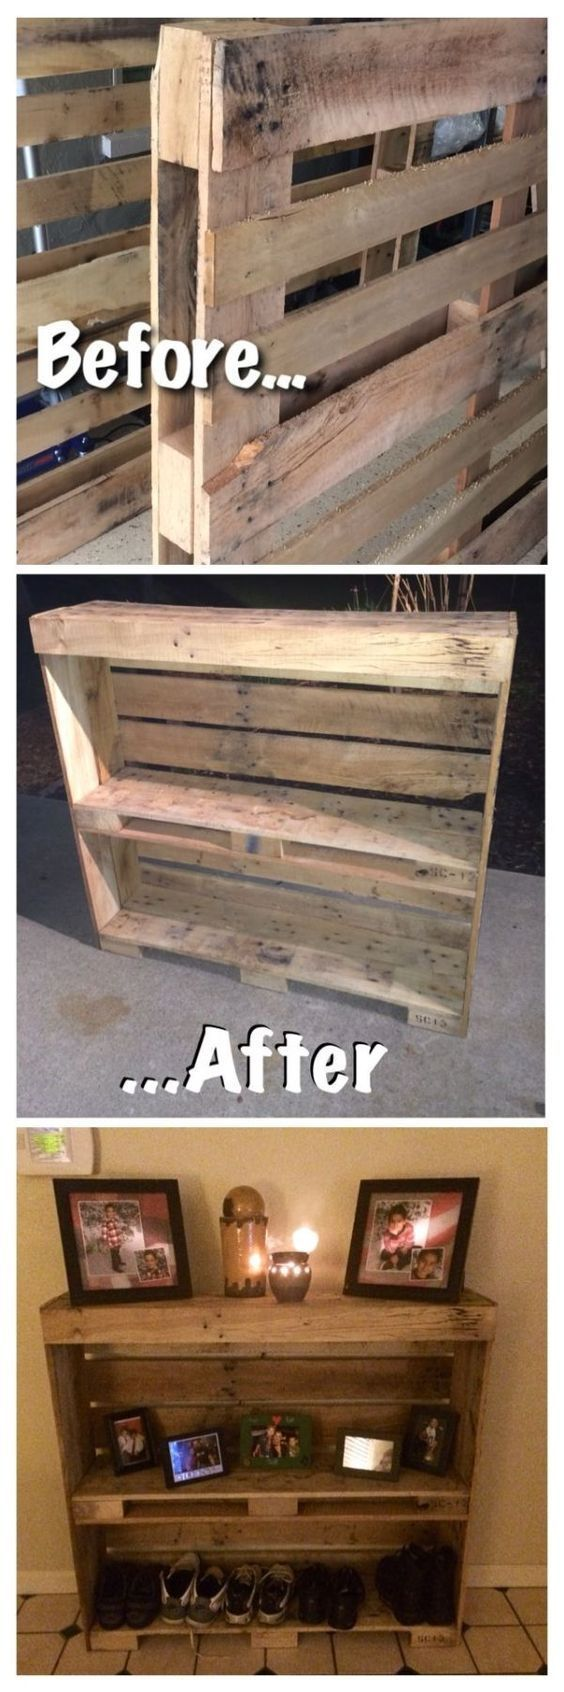 Before and after home decor idea made with pallet wood. Easy DIY Pallet Projects